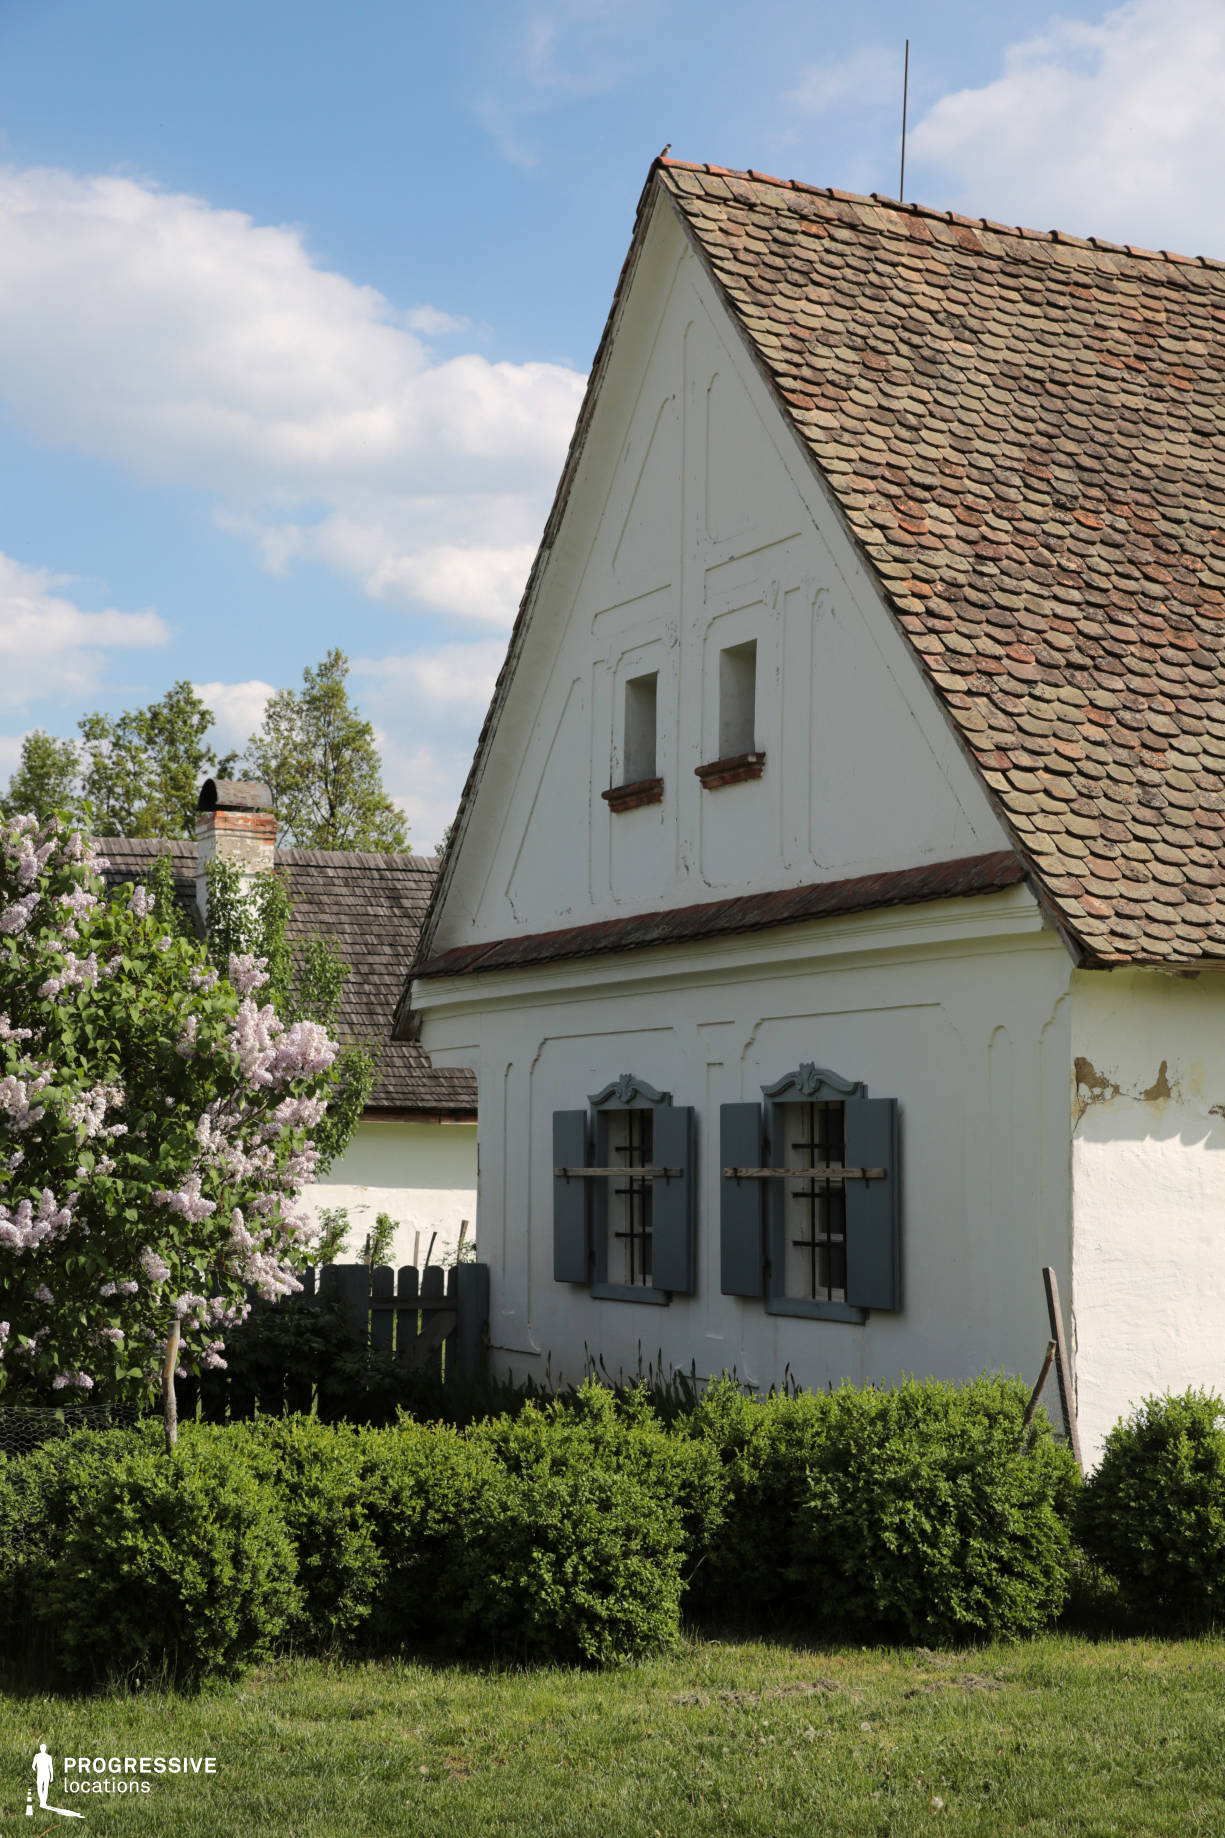 Locations in Hungary: Cottage Facade, Alföld